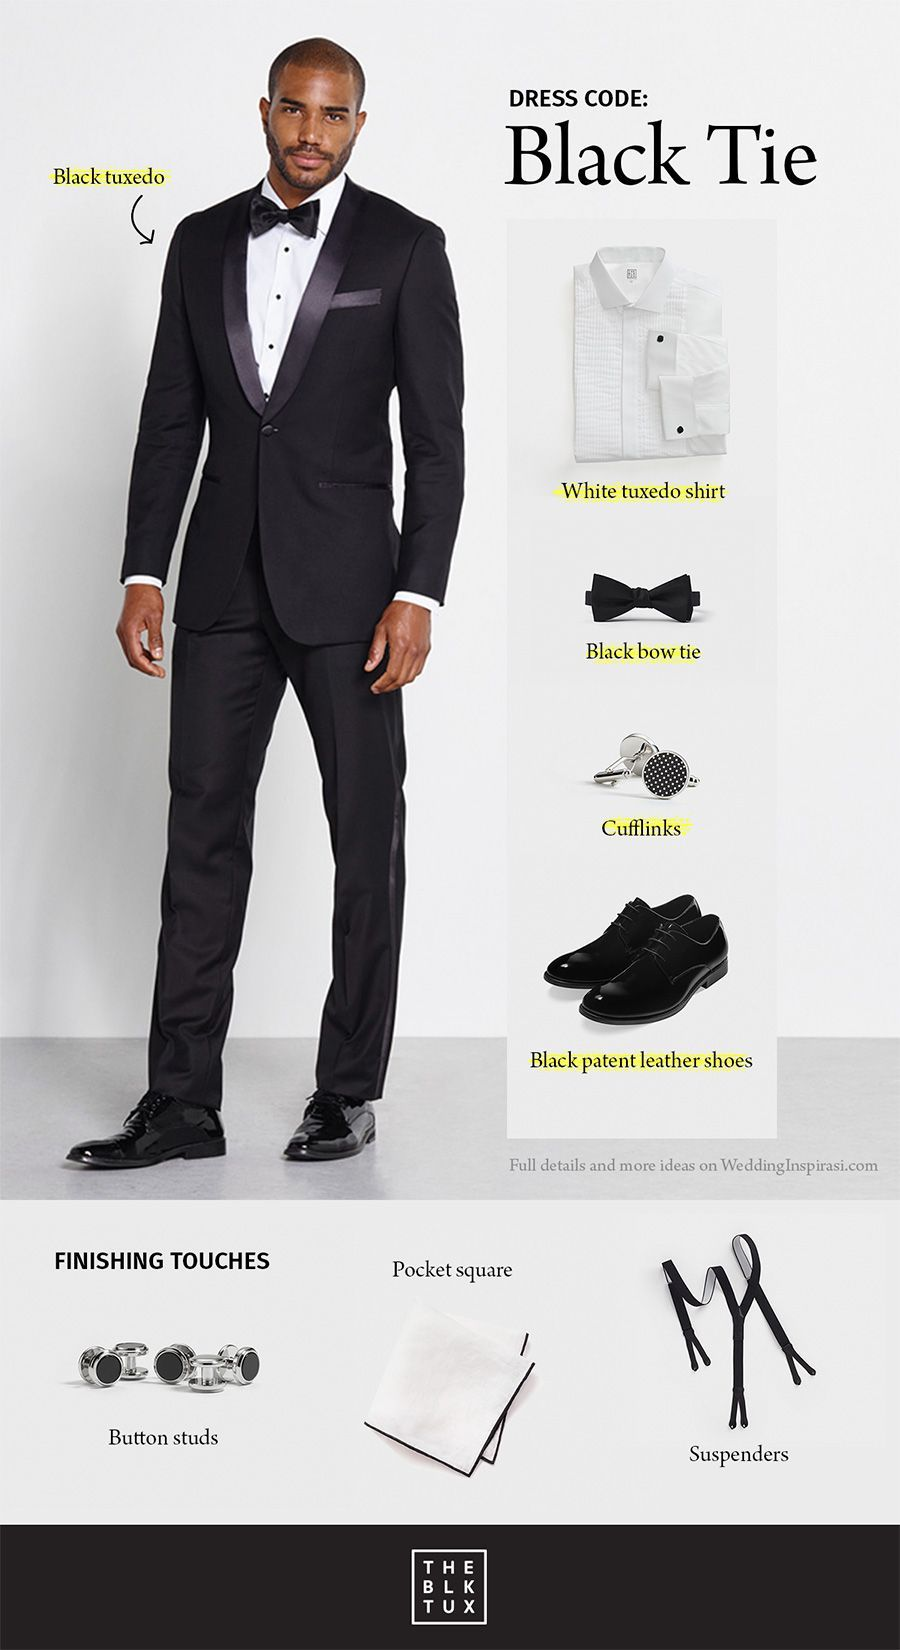 b2b5a5f94f9f Decoding Dress Codes  Get Smart with The Black Tux.  theblacktux